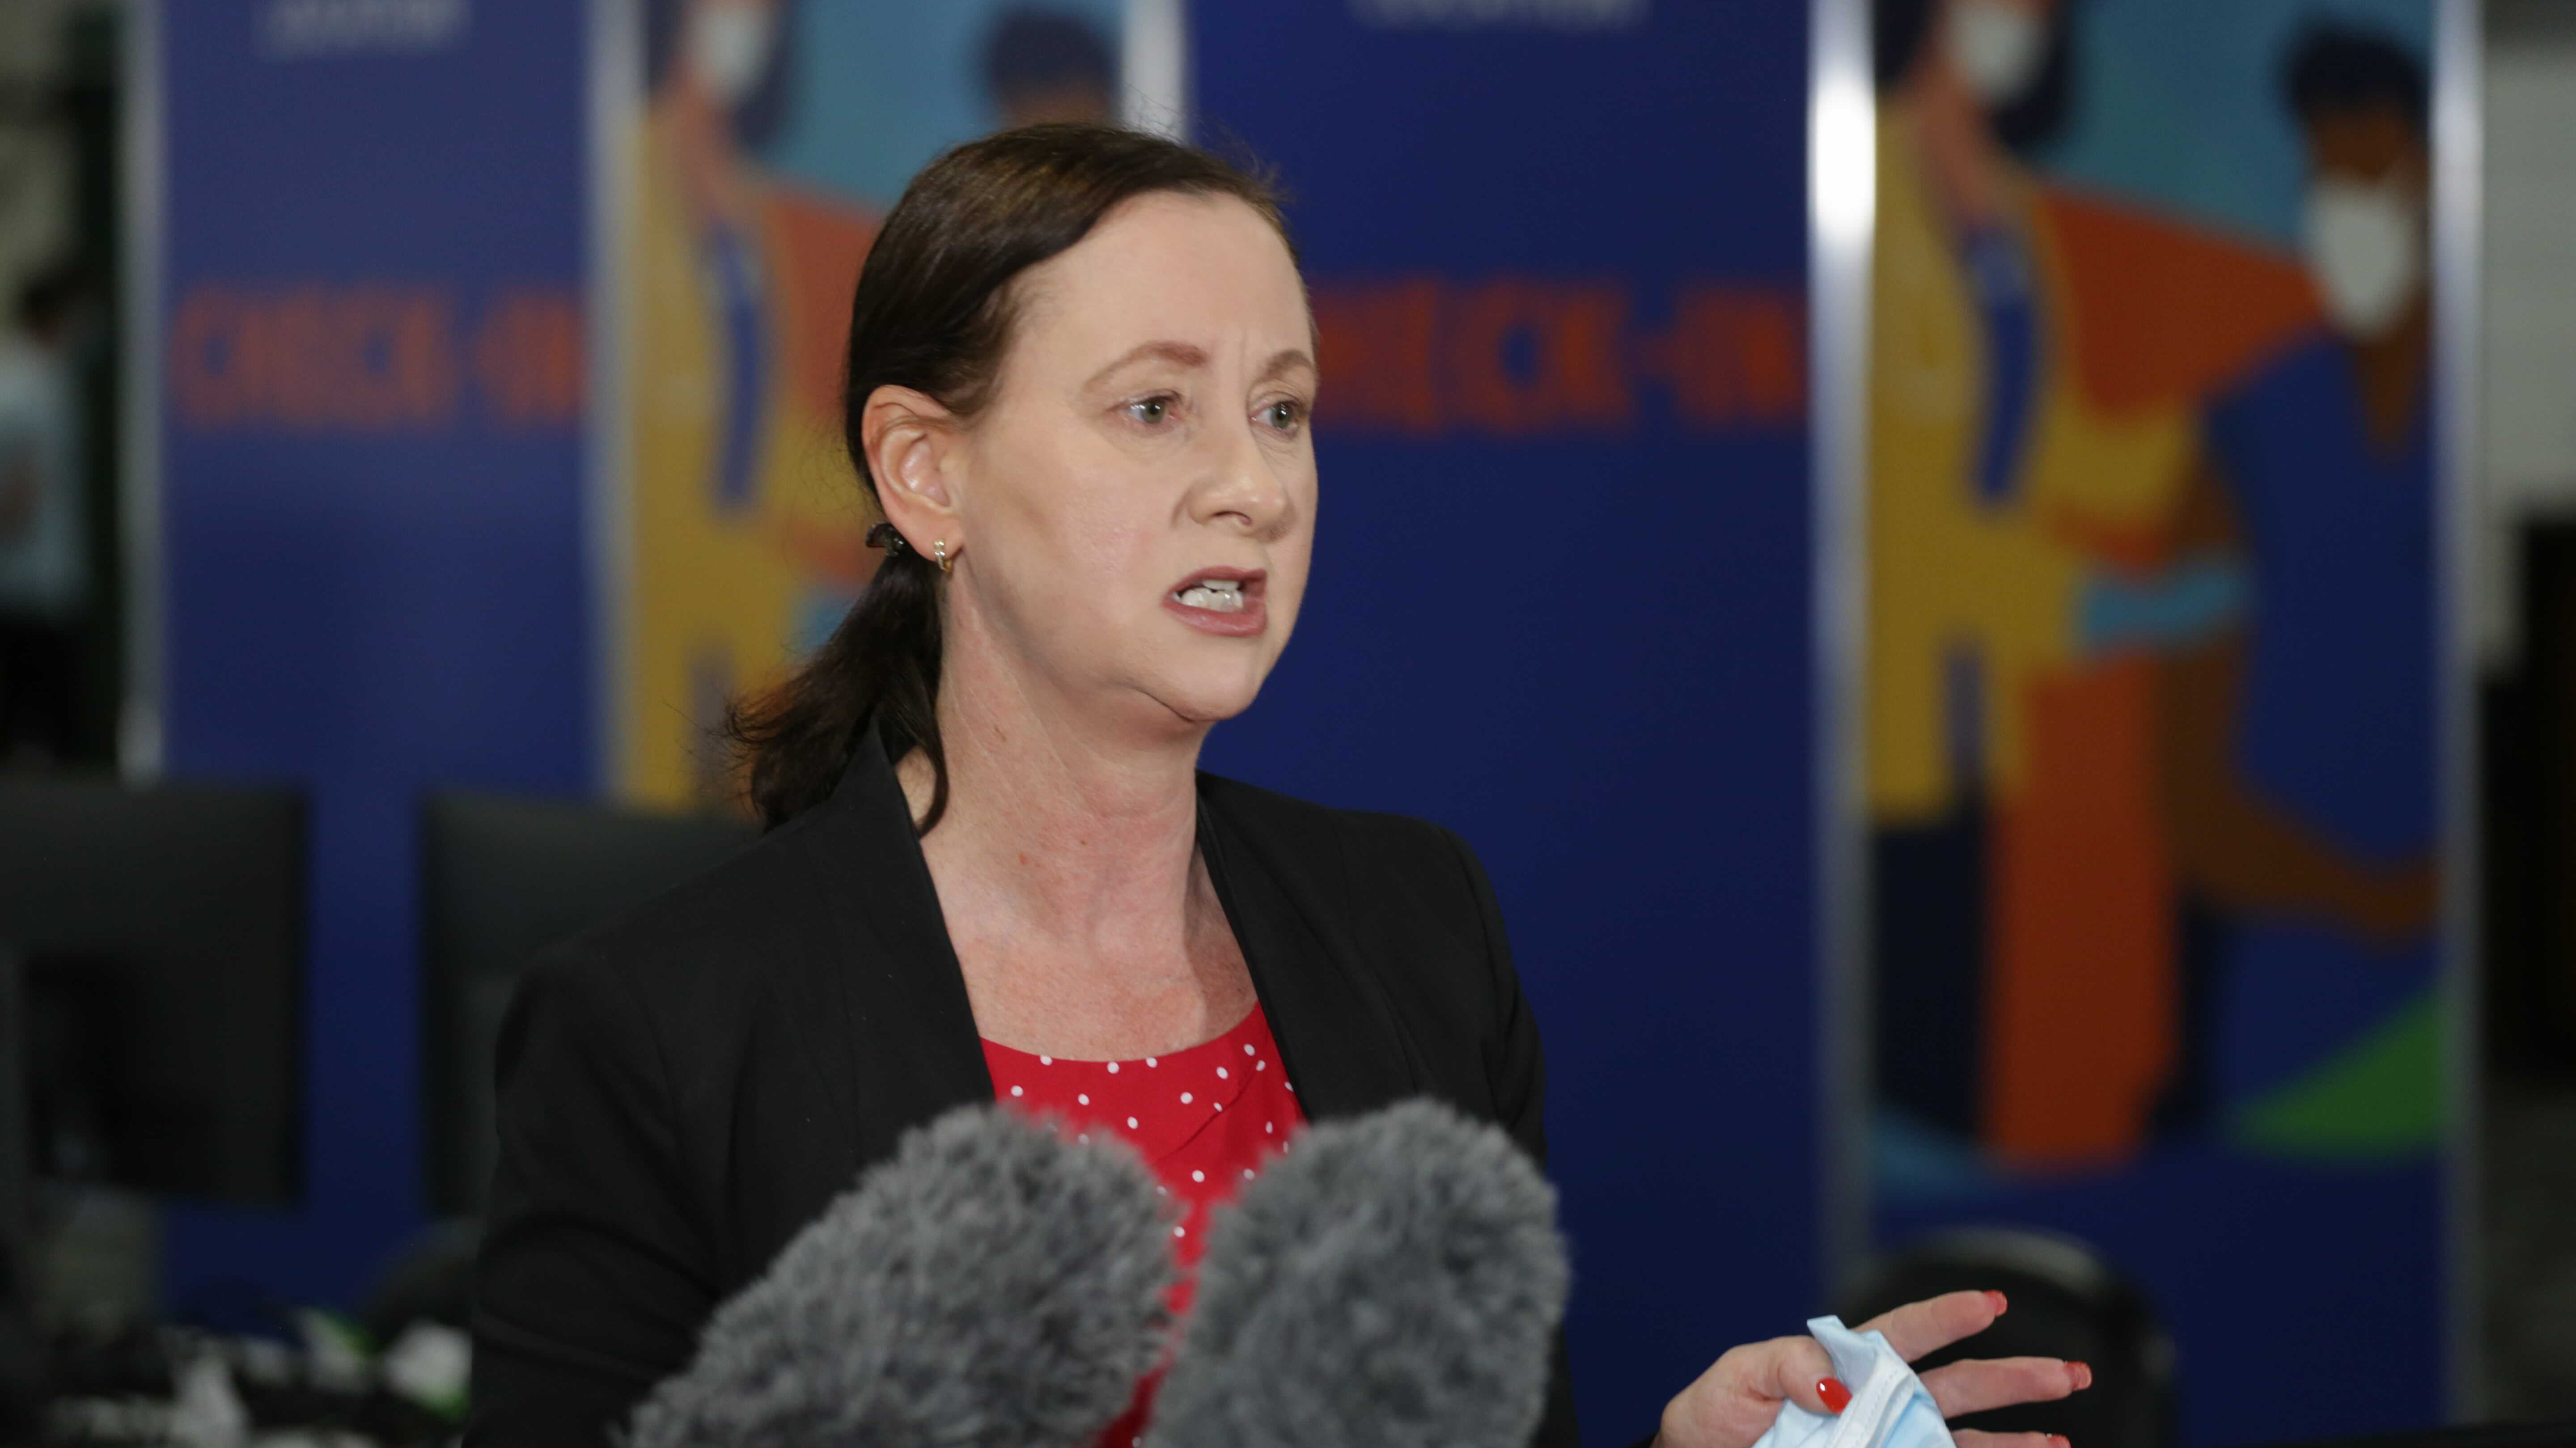 Queensland Health Minister Yvette D'Ath expressed frustration about inaccuracy surrounding the ADF's personnel request.